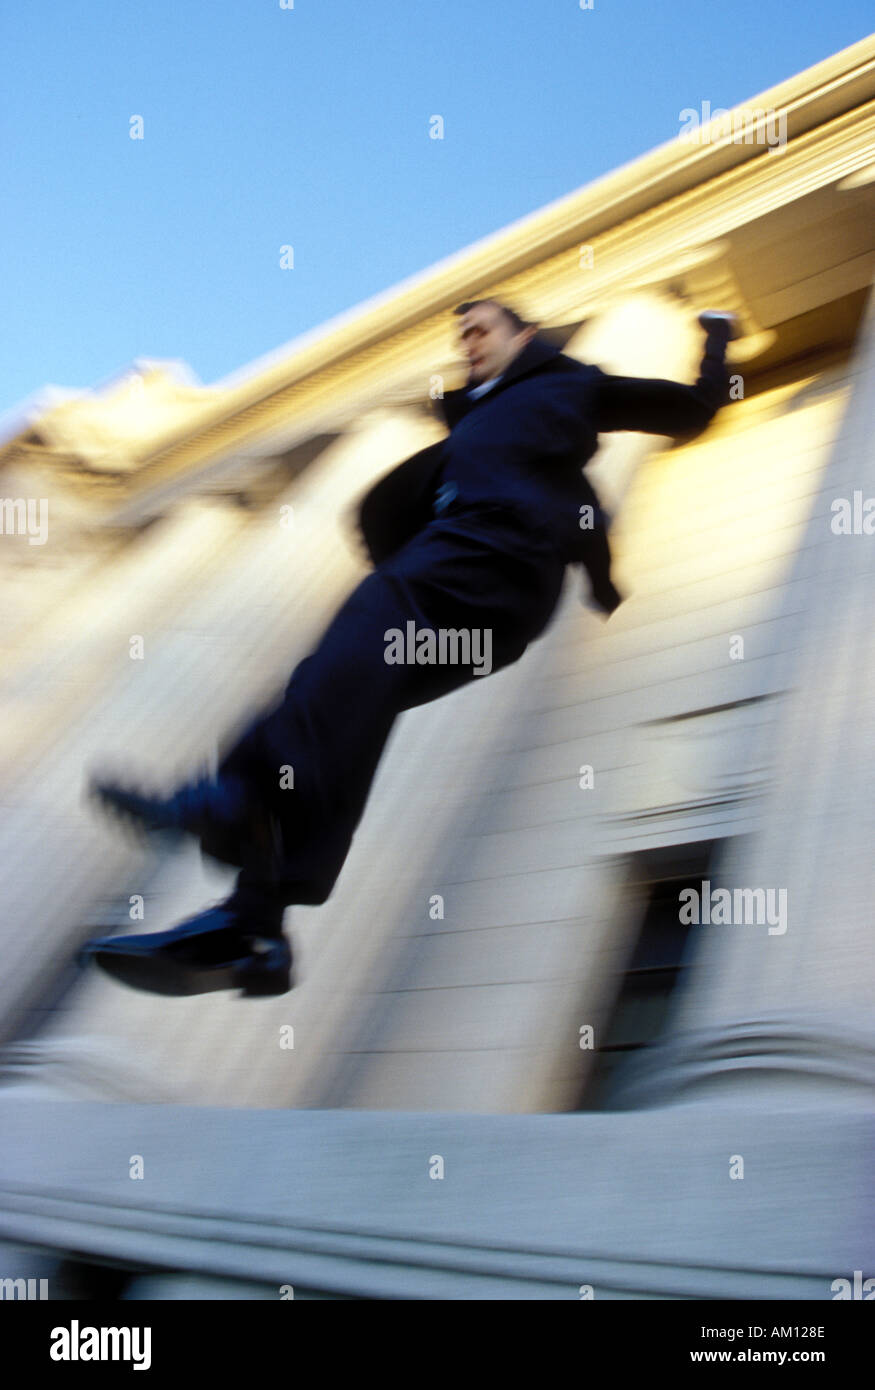 businessman jumping off building stock photo 1315469 alamy